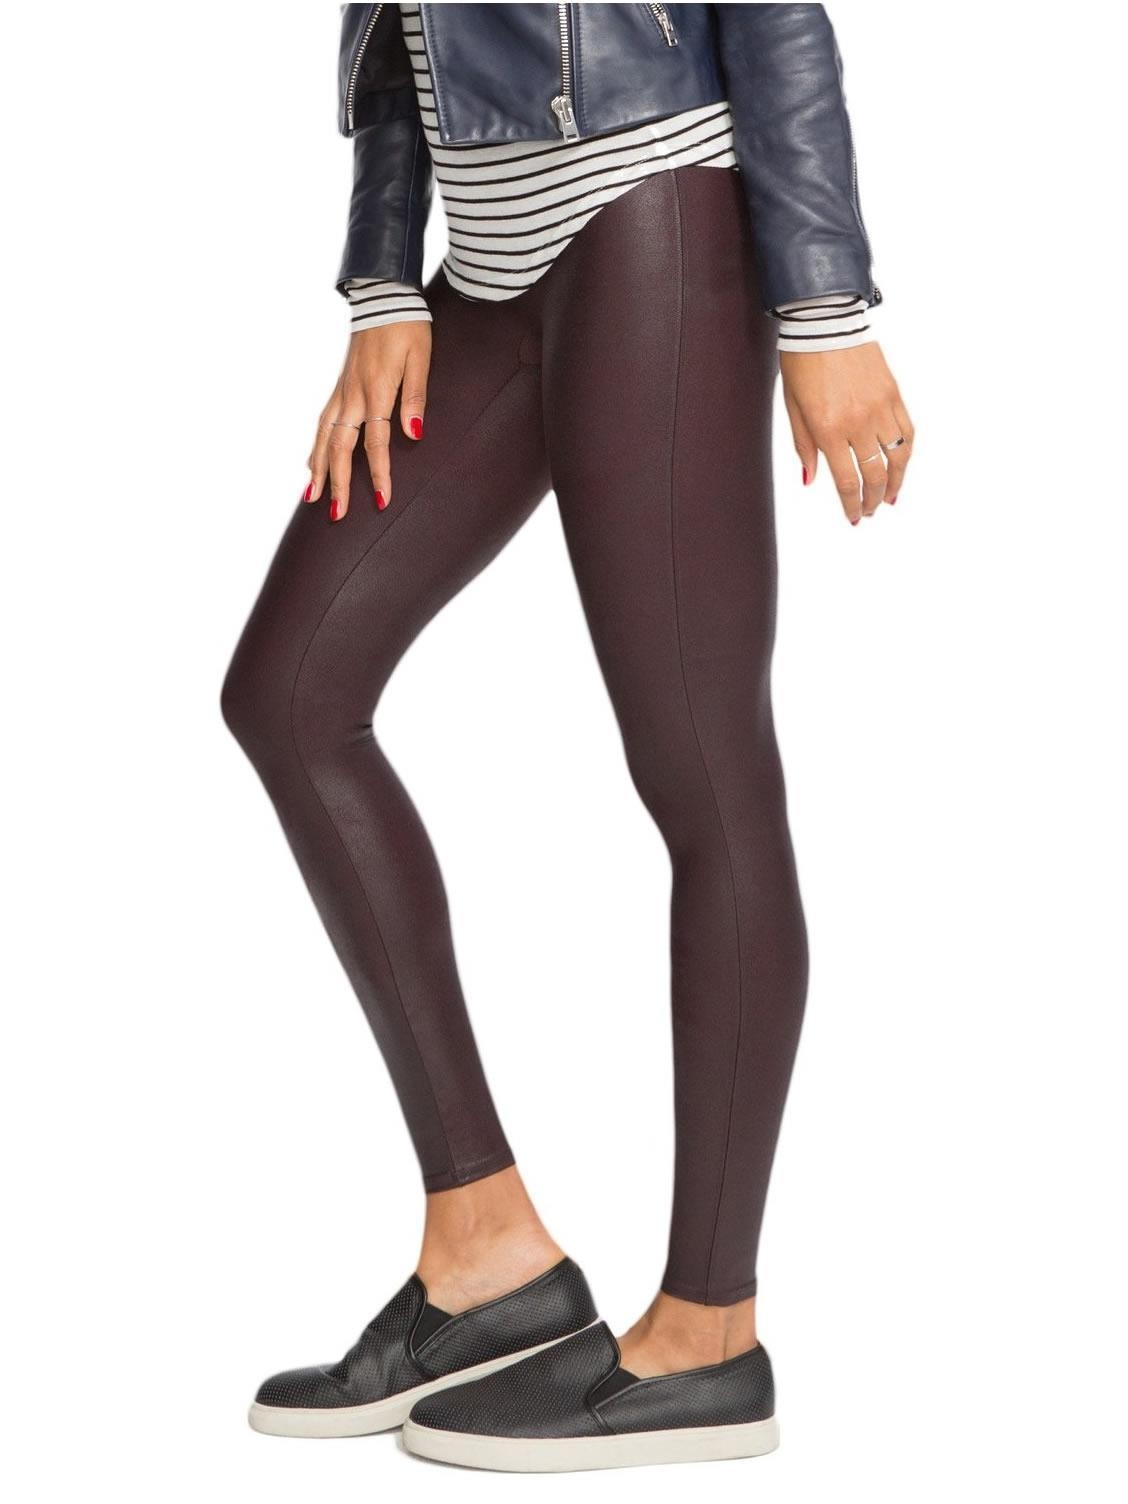 e6562063c49 SPANX - SPANX Ready-to-Wow Faux Leather Shaping Leggings - Walmart.com